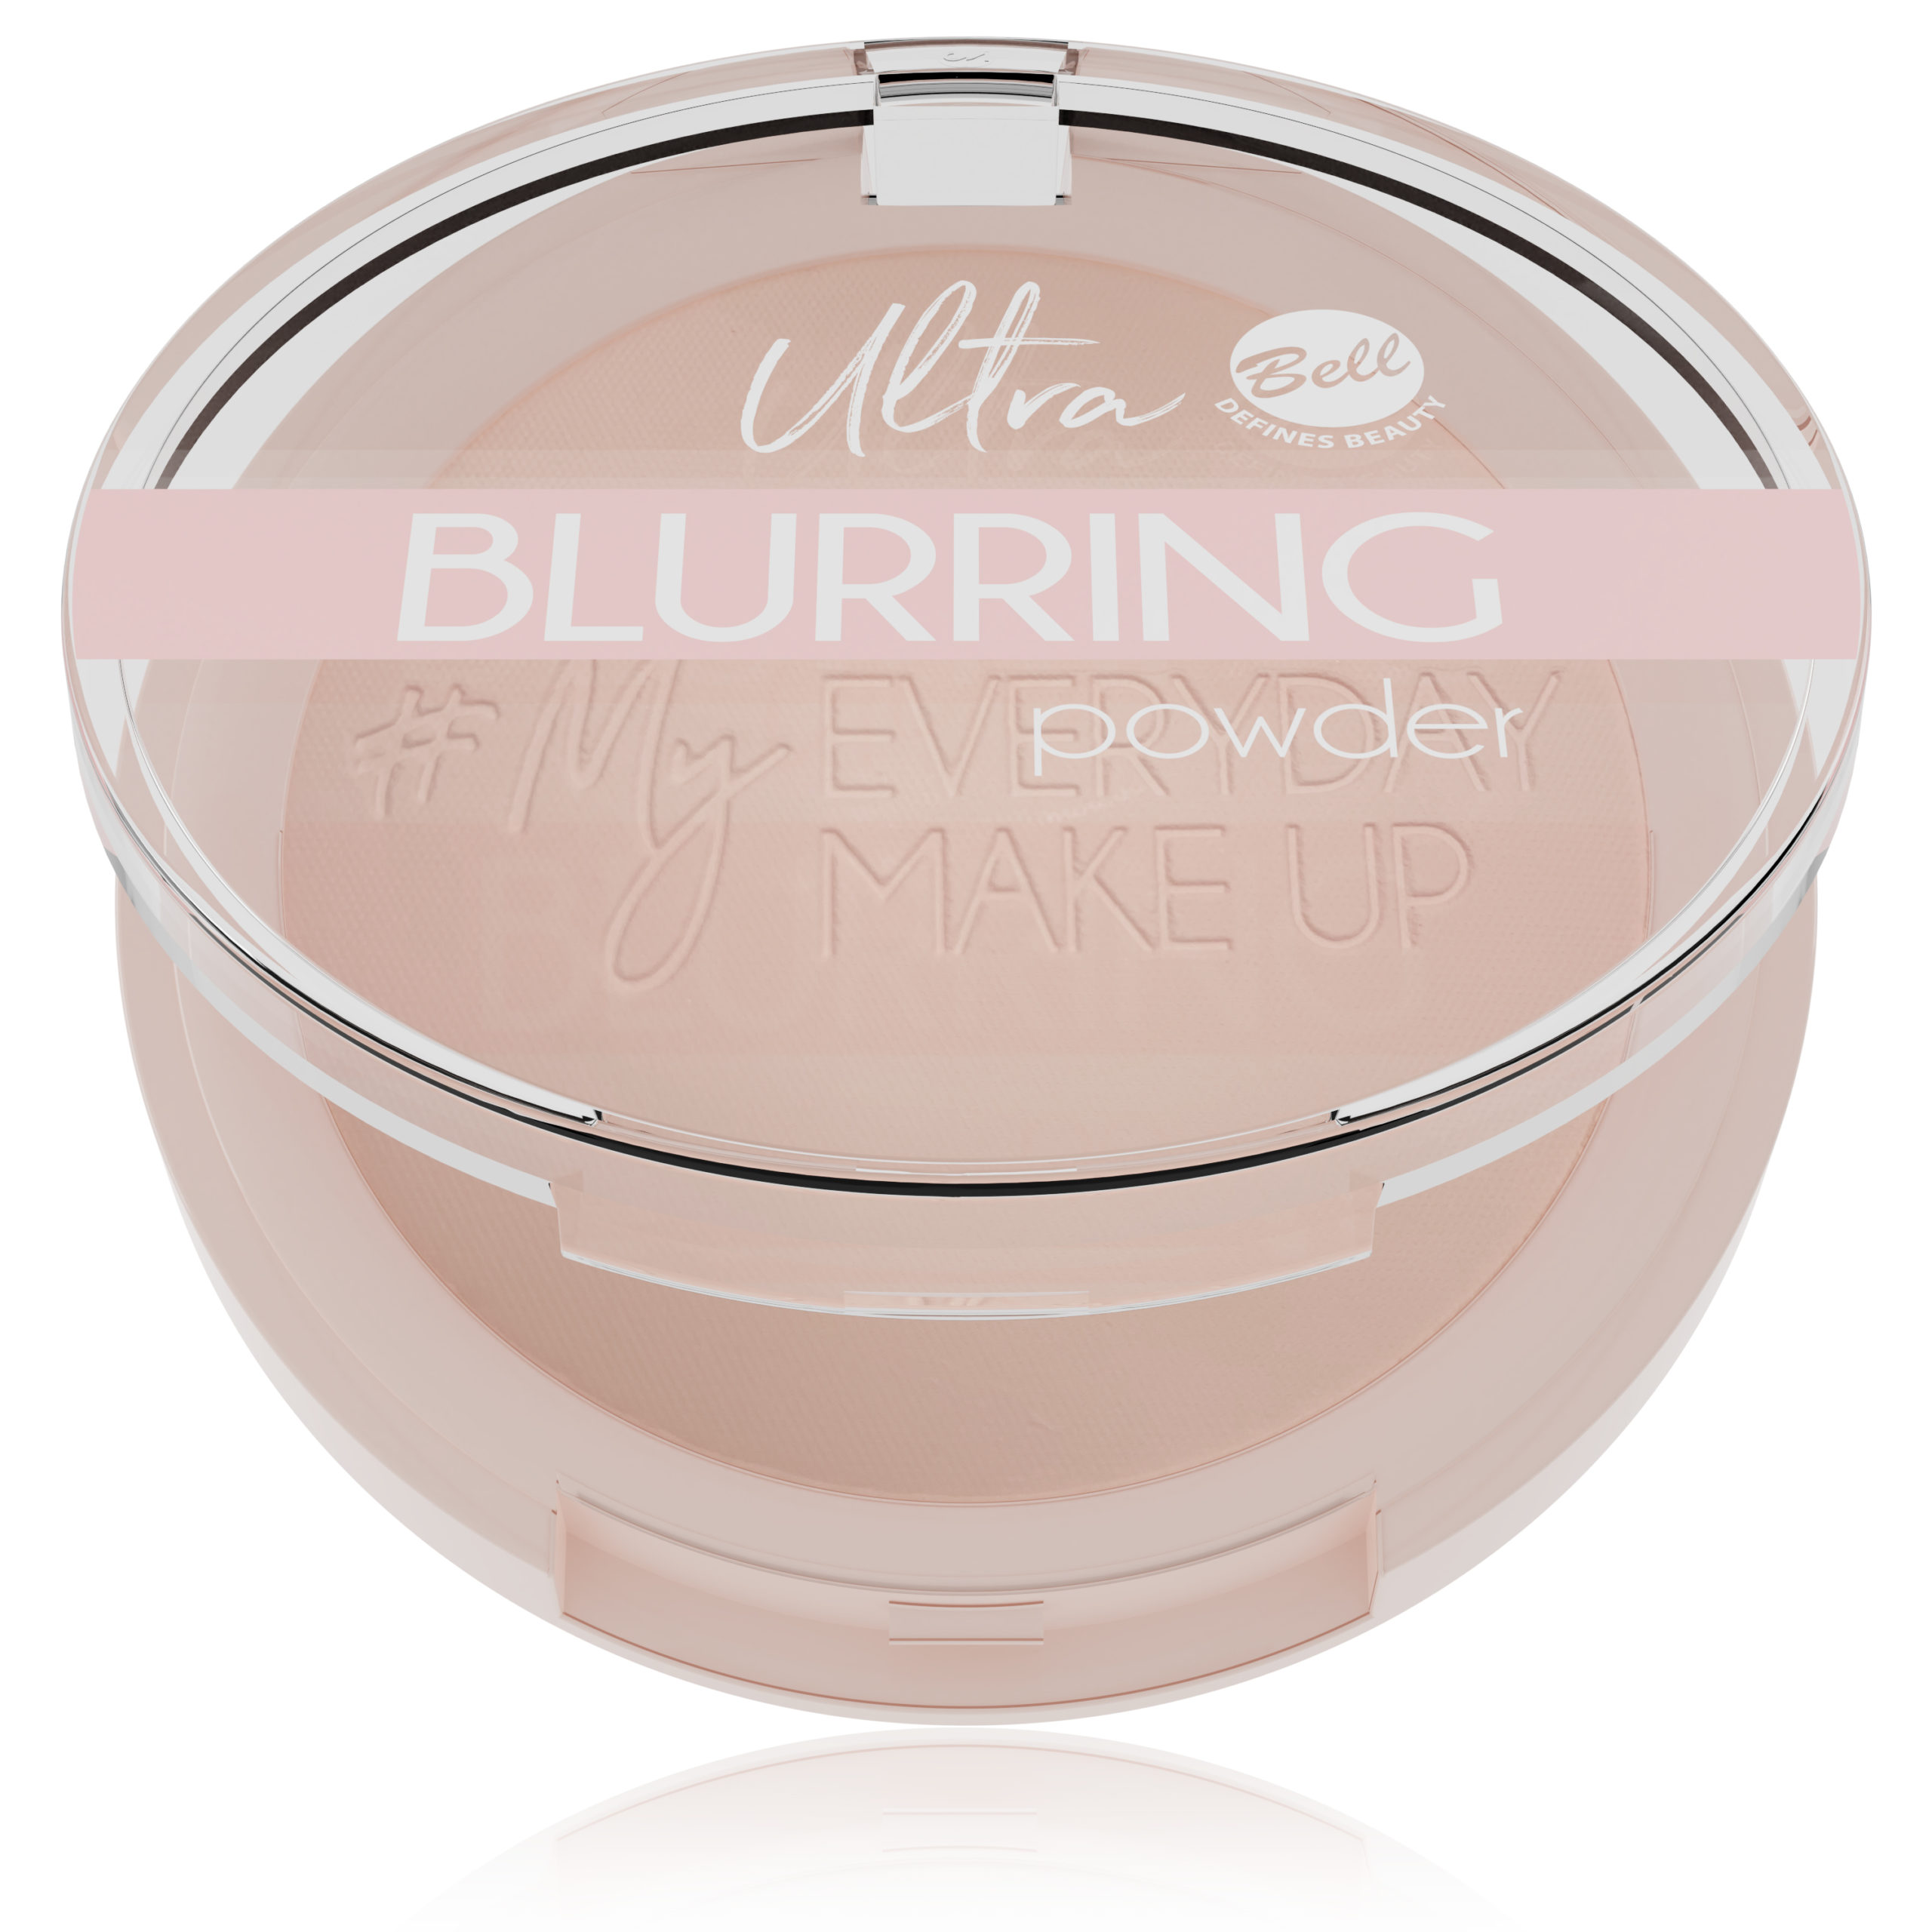 Ultra Blurring Powder